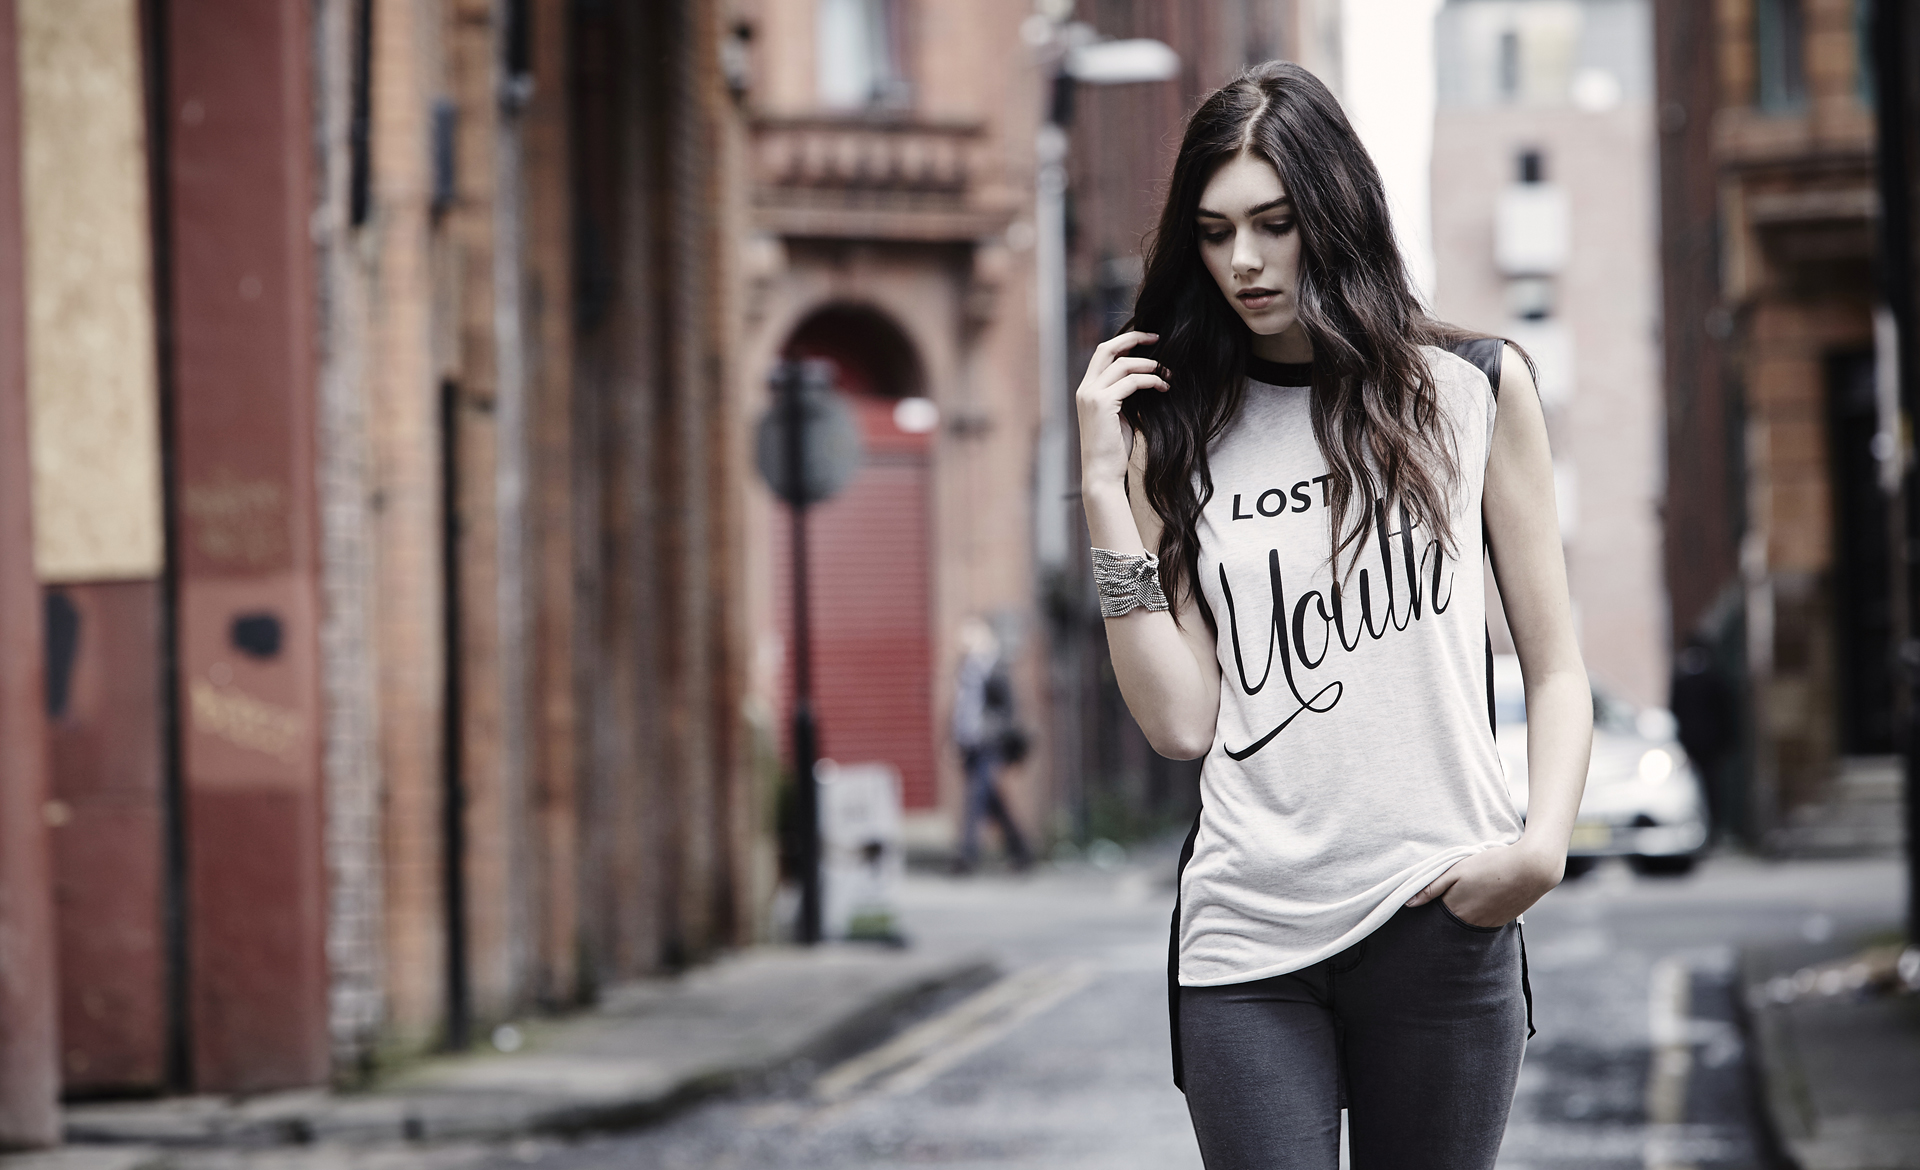 Women's Street Fashion Clothing